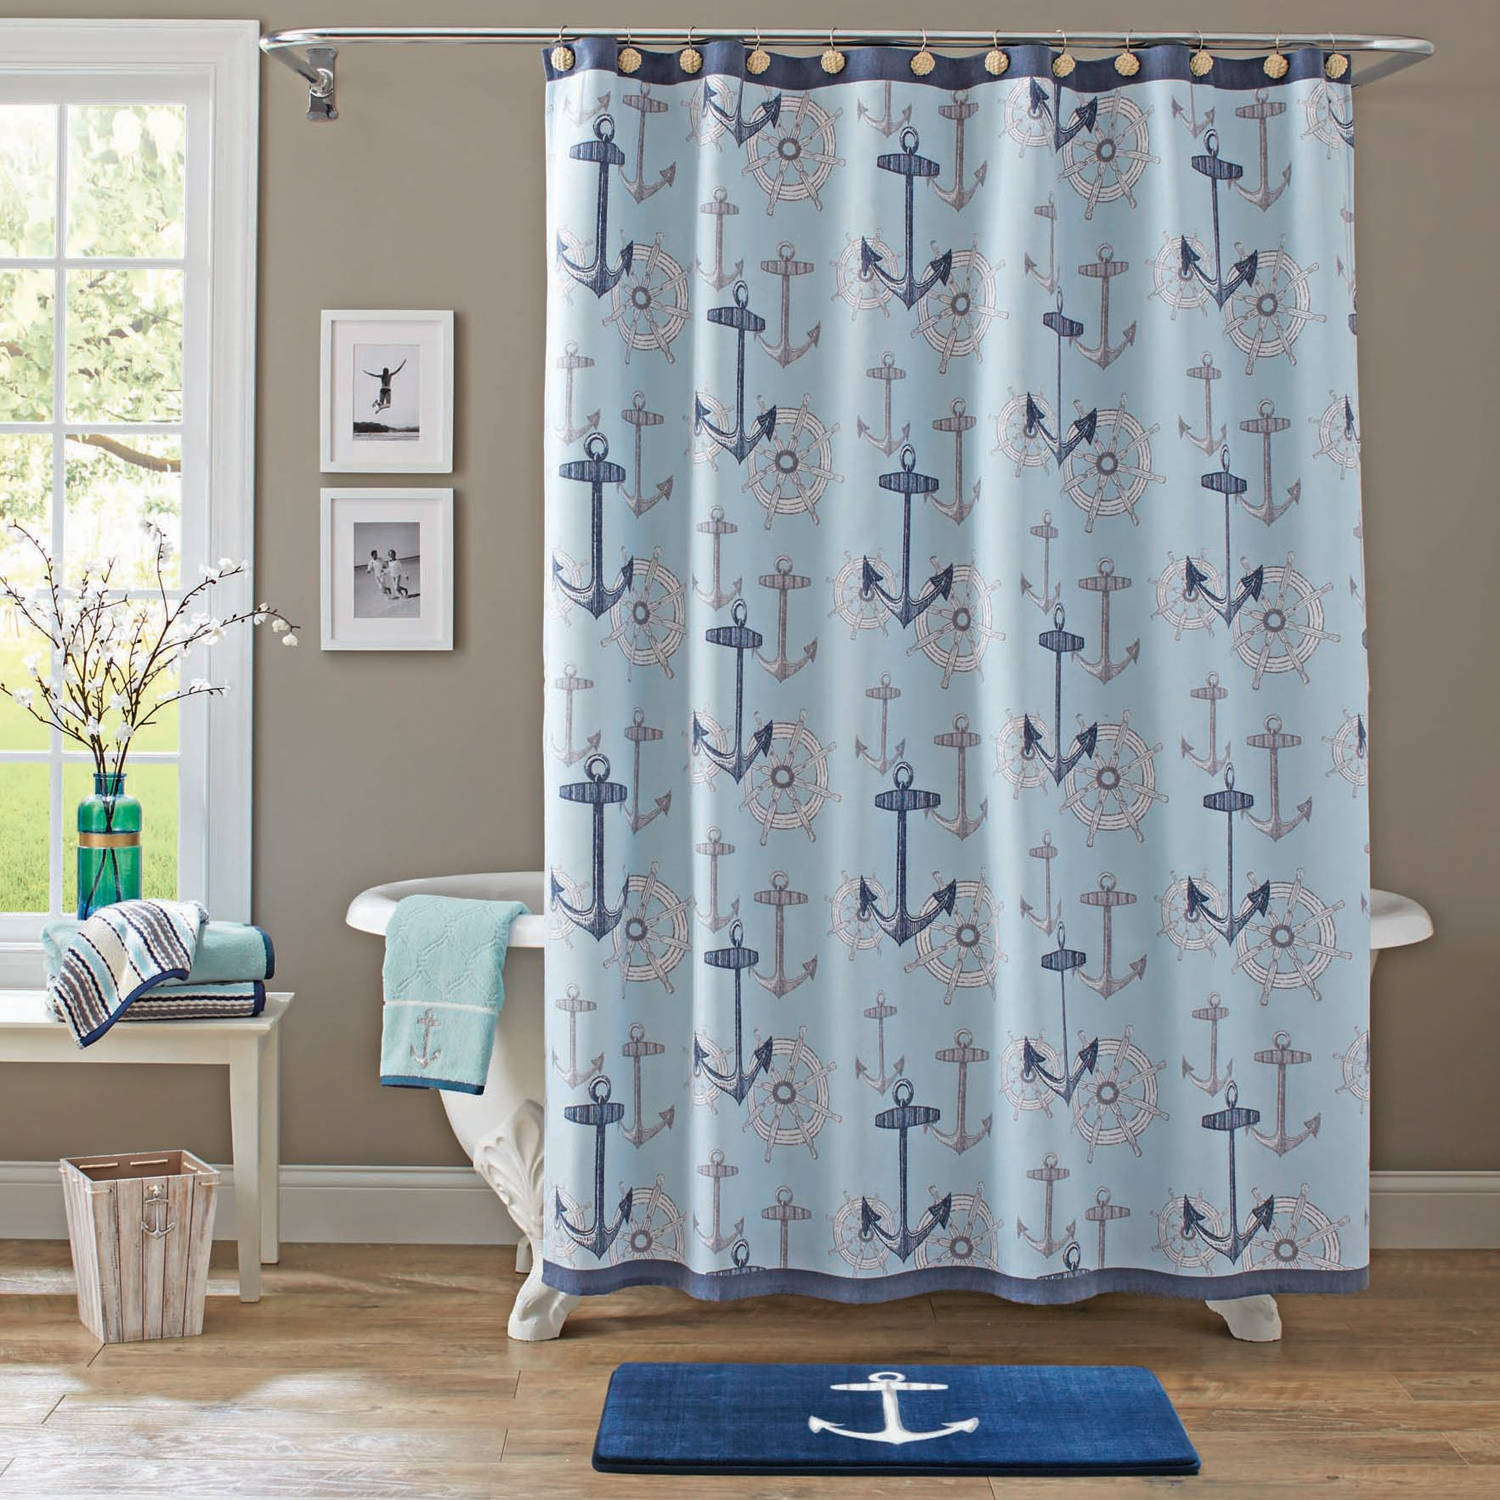 Better Homes and Gardens Nautical Shower Curtain by Generic